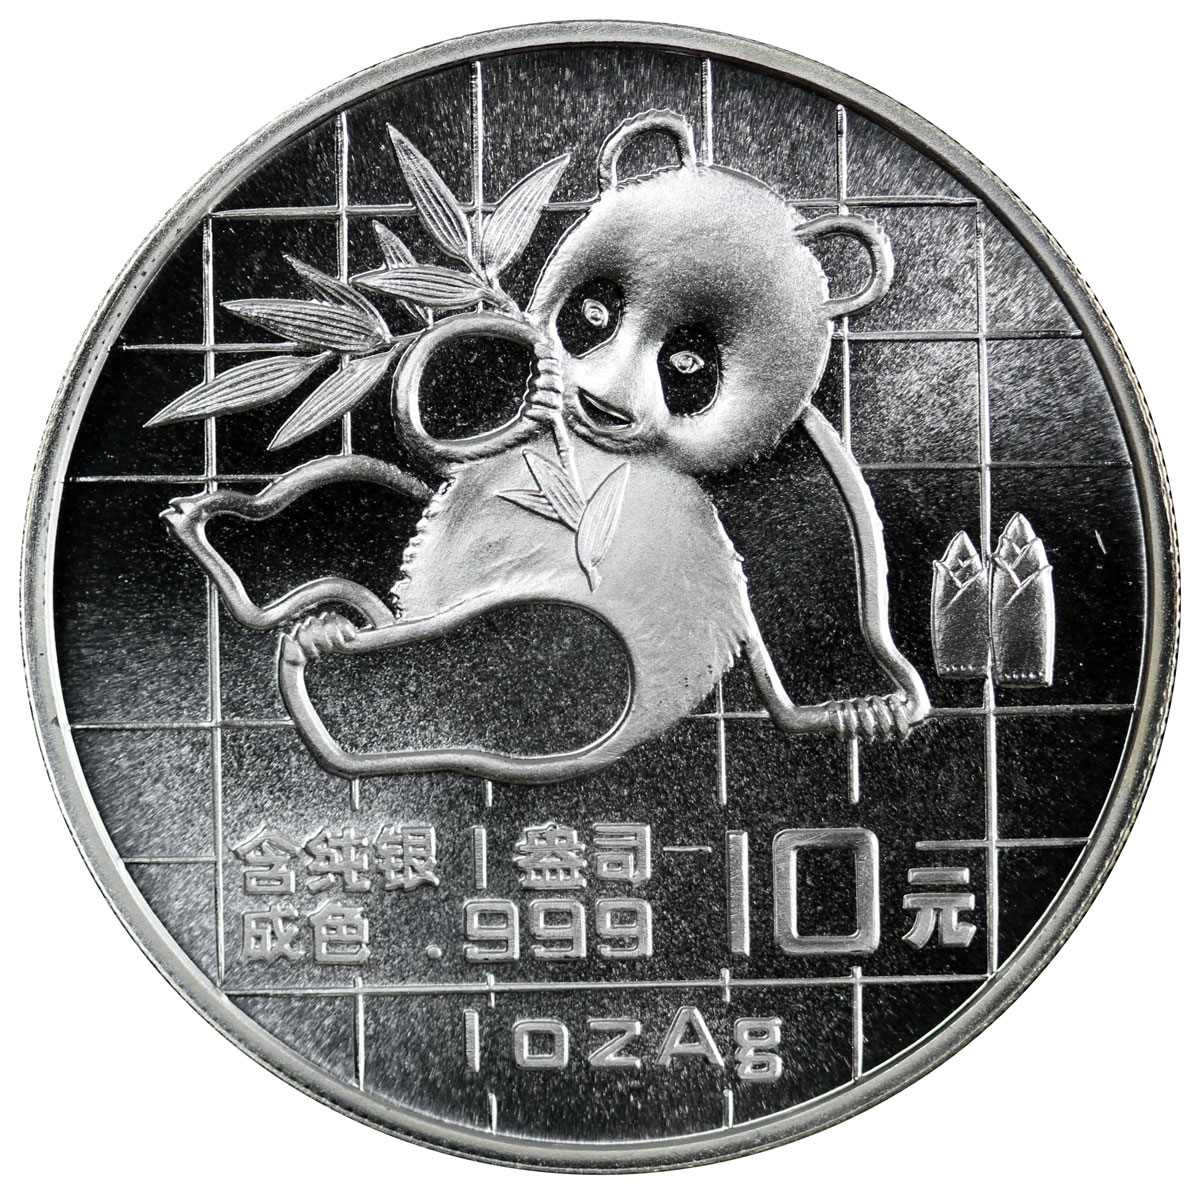 1989 China 1 oz Silver Panda ¥10 Coin BU